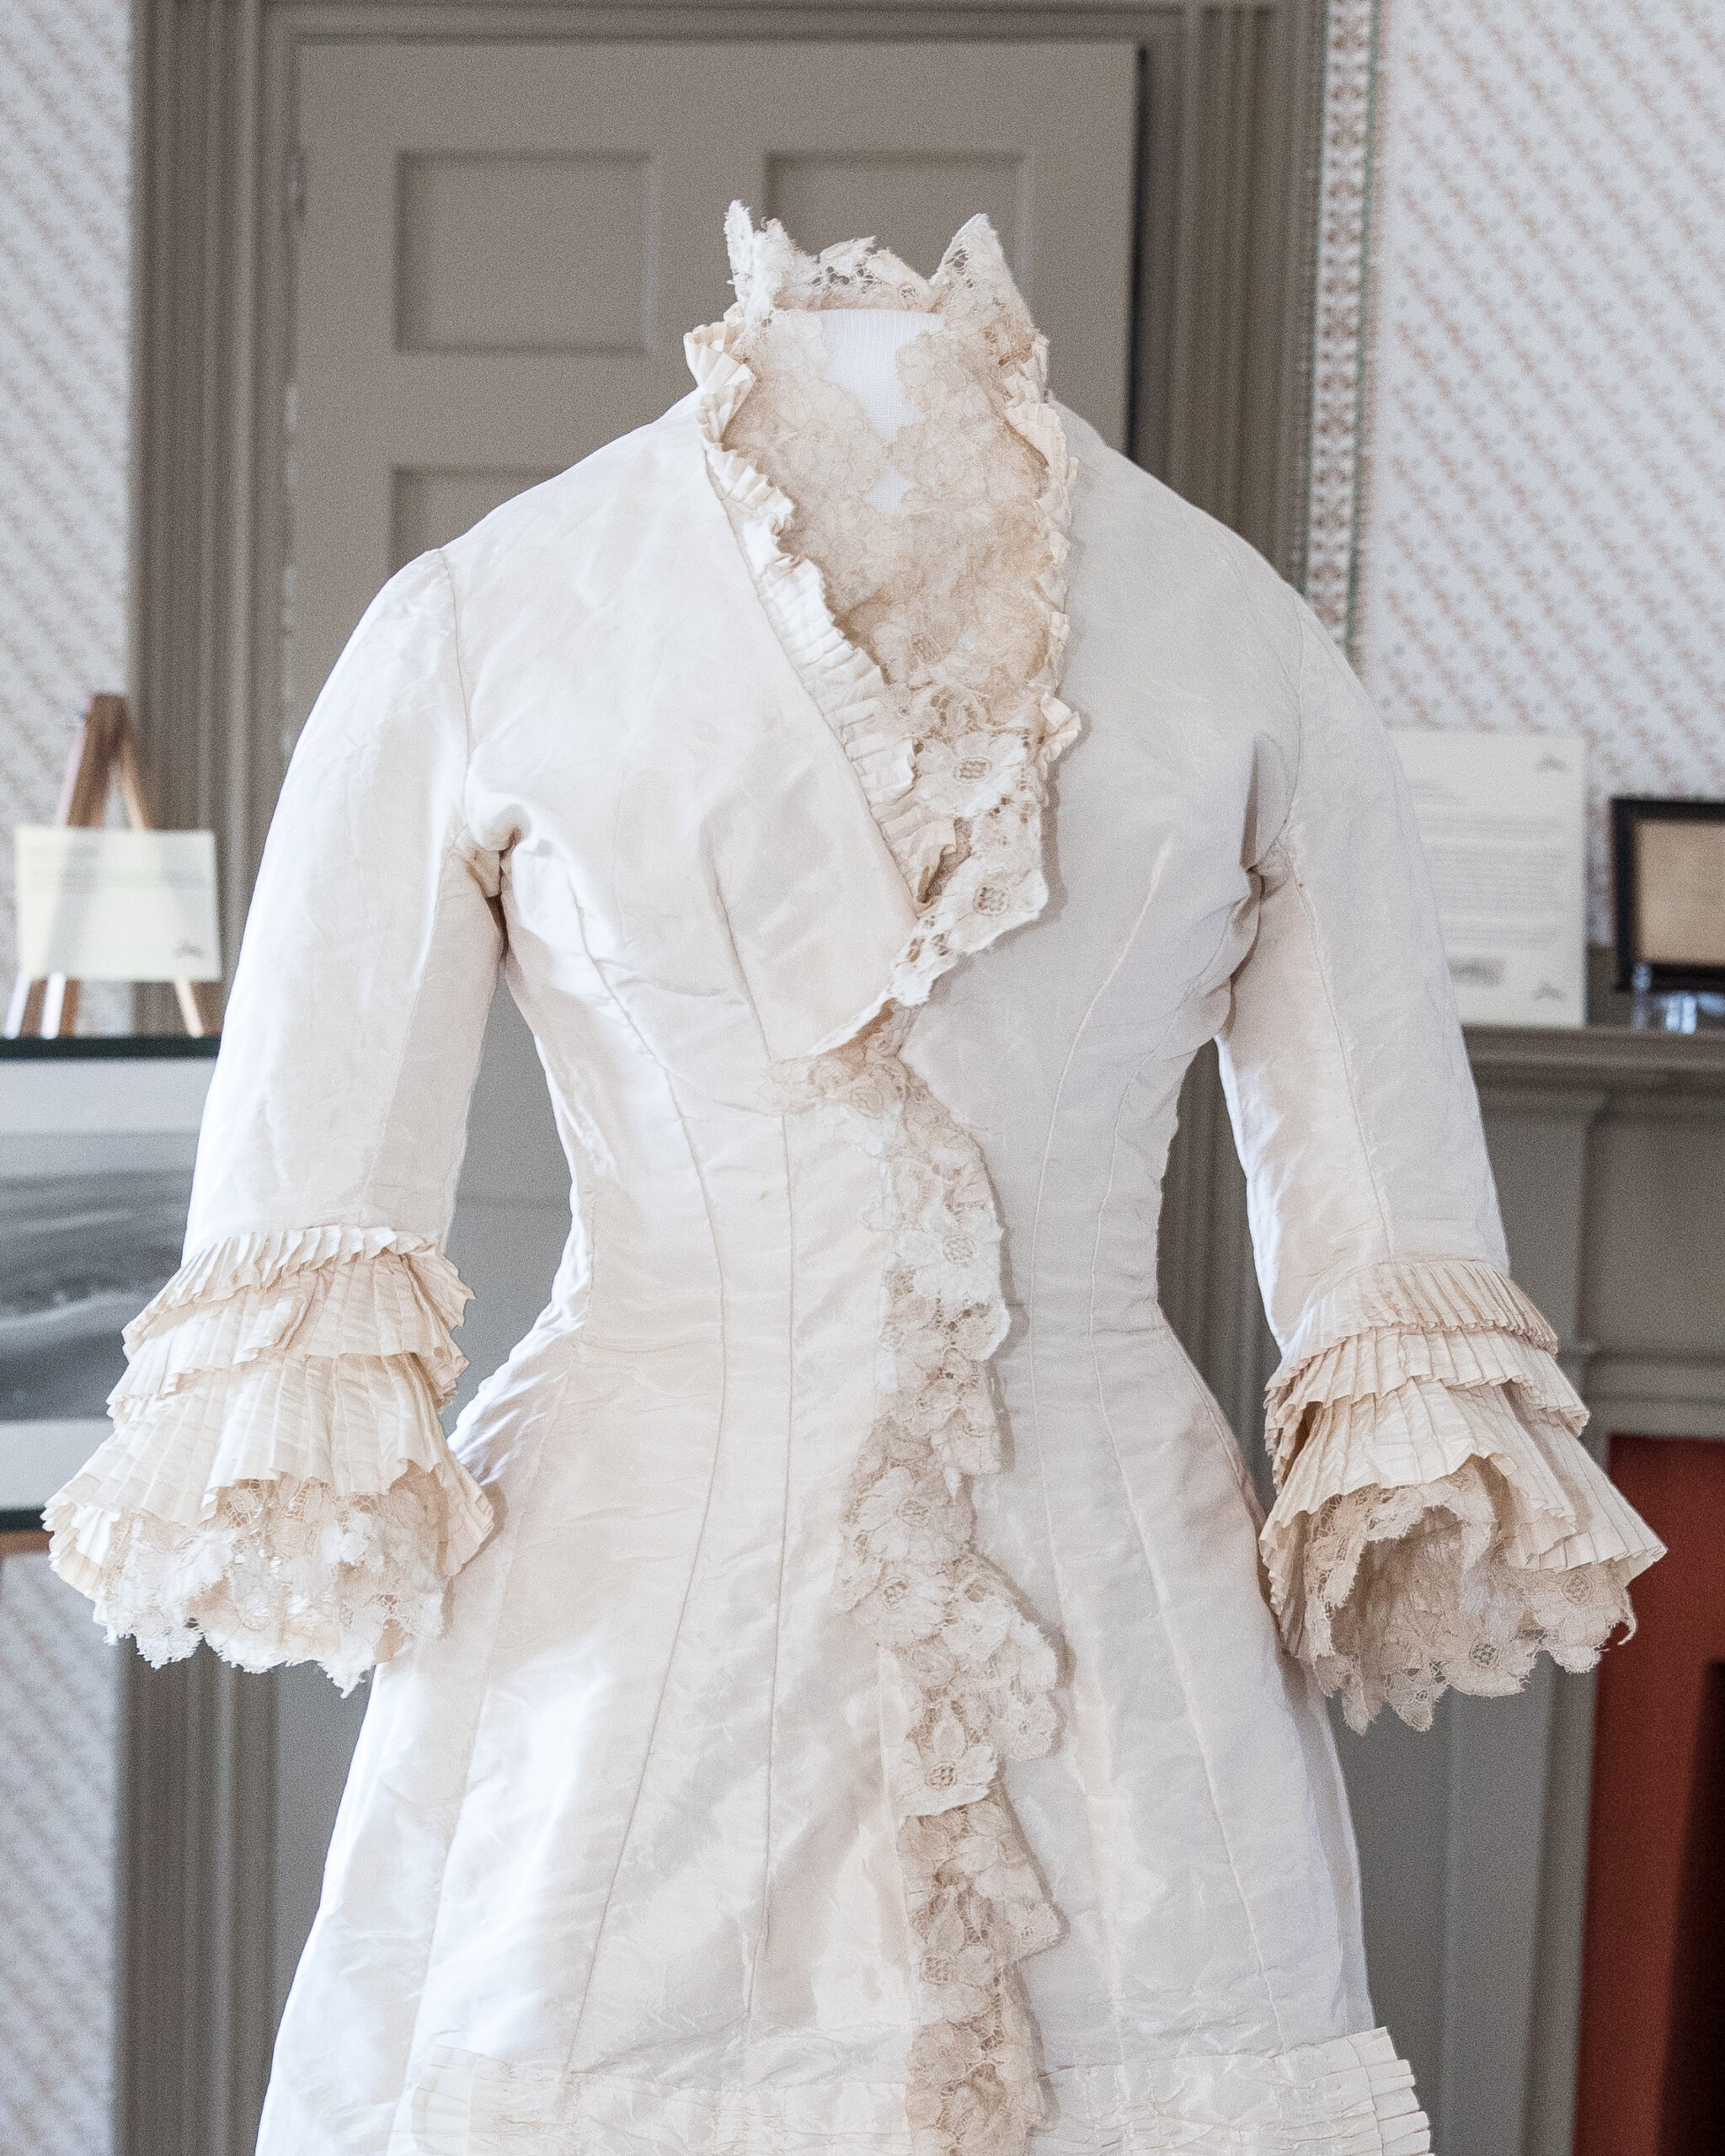 Lunchtime Conversation: Historic Clothing & Textiles